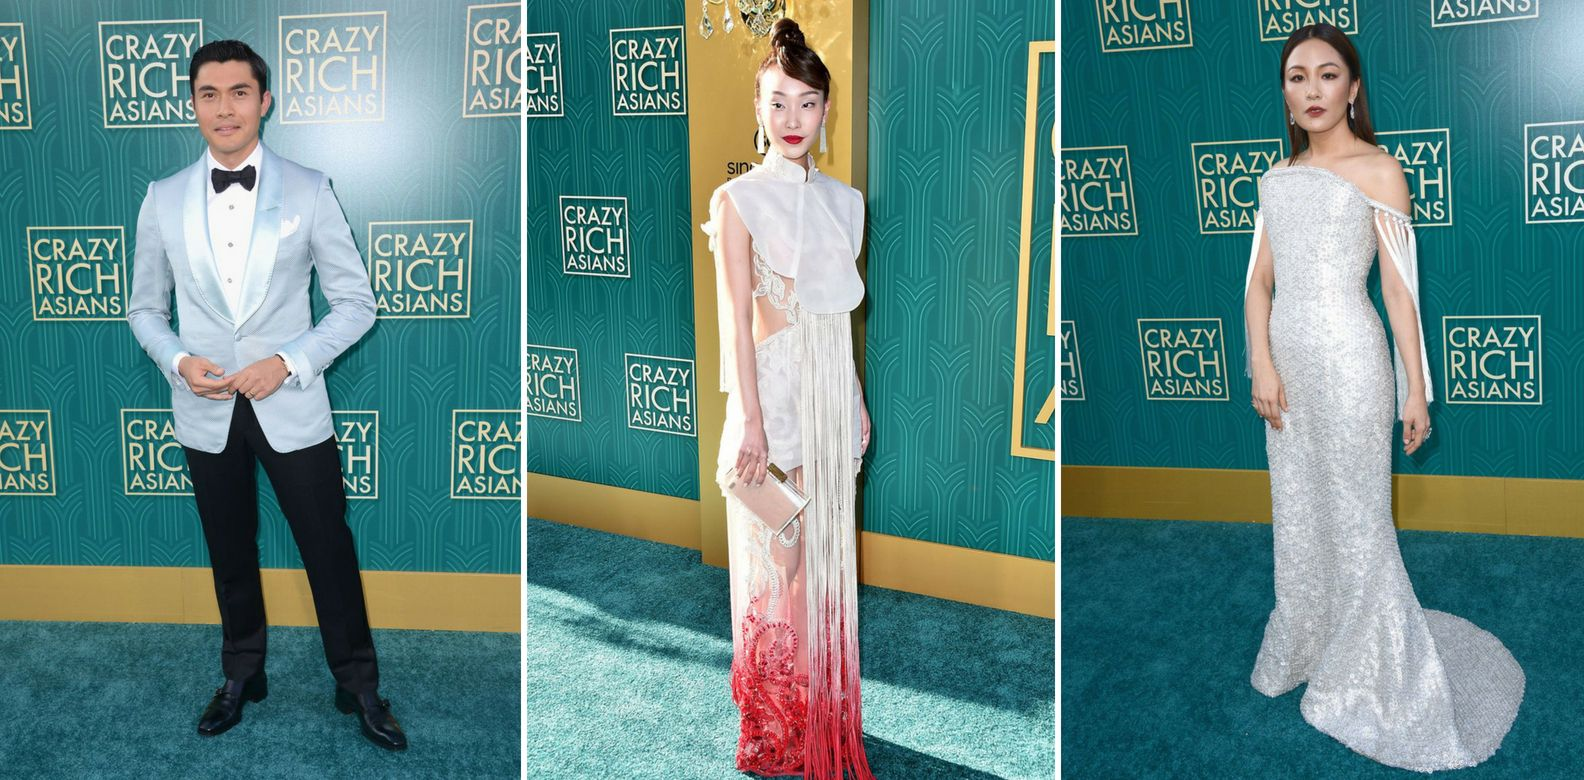 Video: Who Wore What At The Crazy Rich Asians Hollywood Premiere